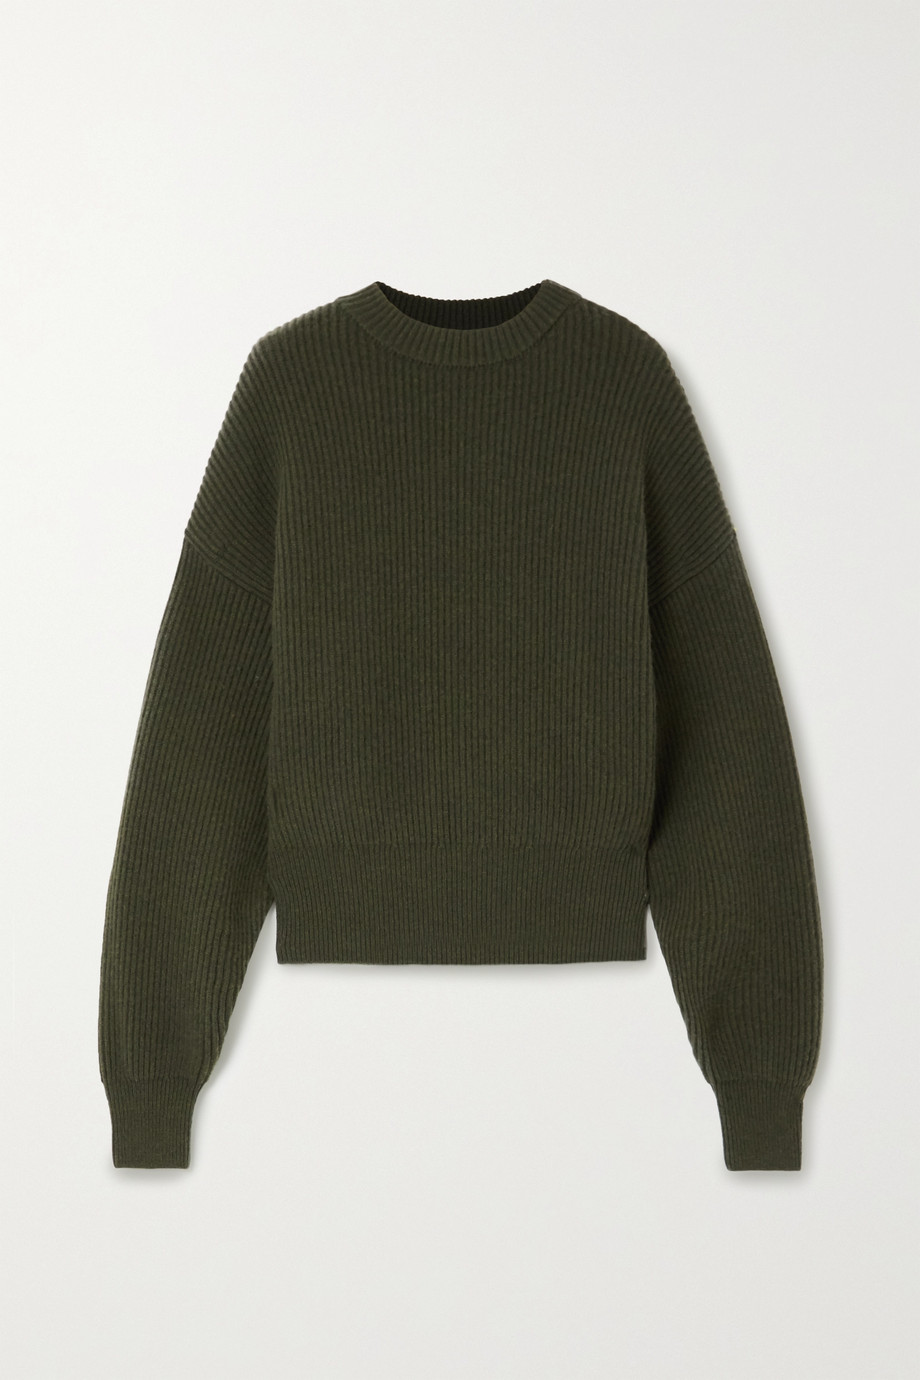 CORDOVA Megève ribbed merino wool sweater